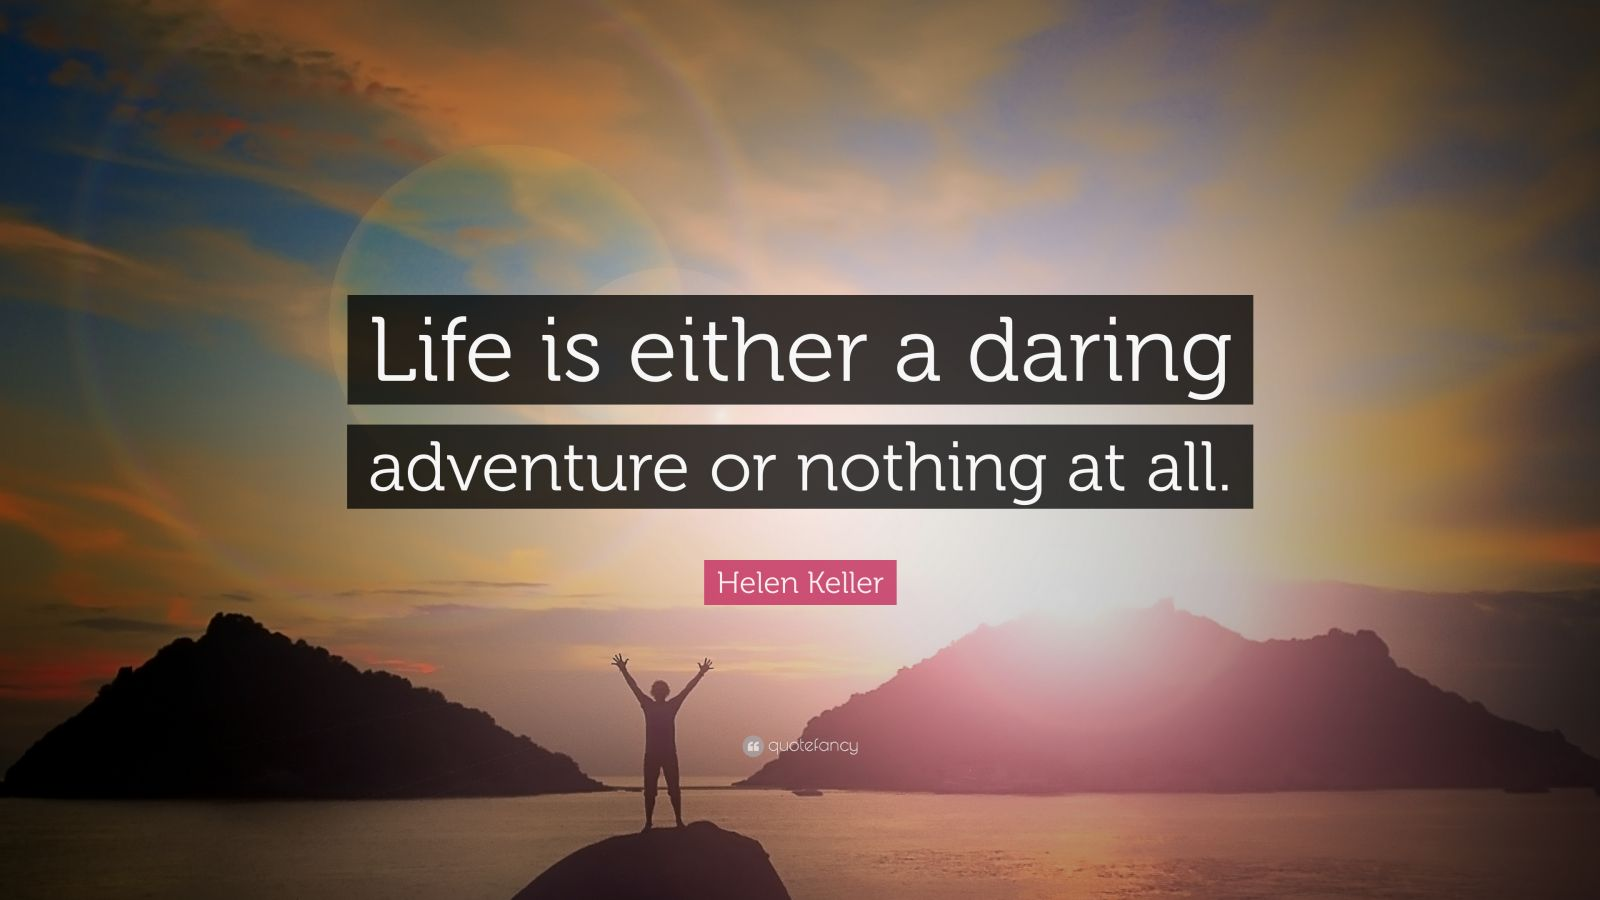 Love Inspiring Quotes Wallpaper Helen Keller Quote Life Is Either A Daring Adventure Or